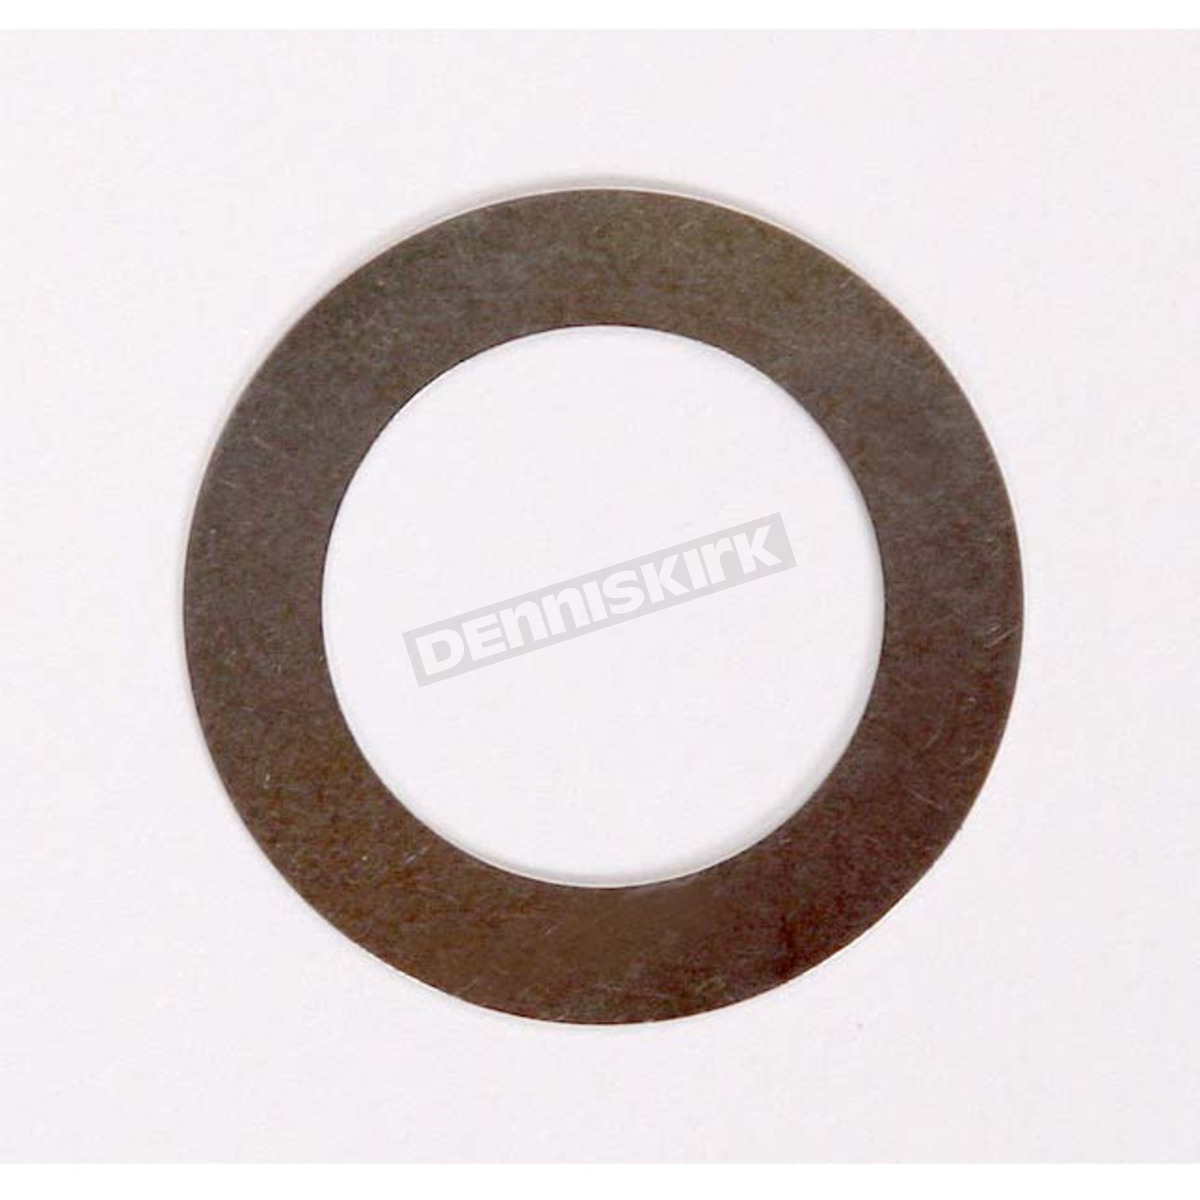 Eastern Motorcycle Parts Cam Shims A-6771